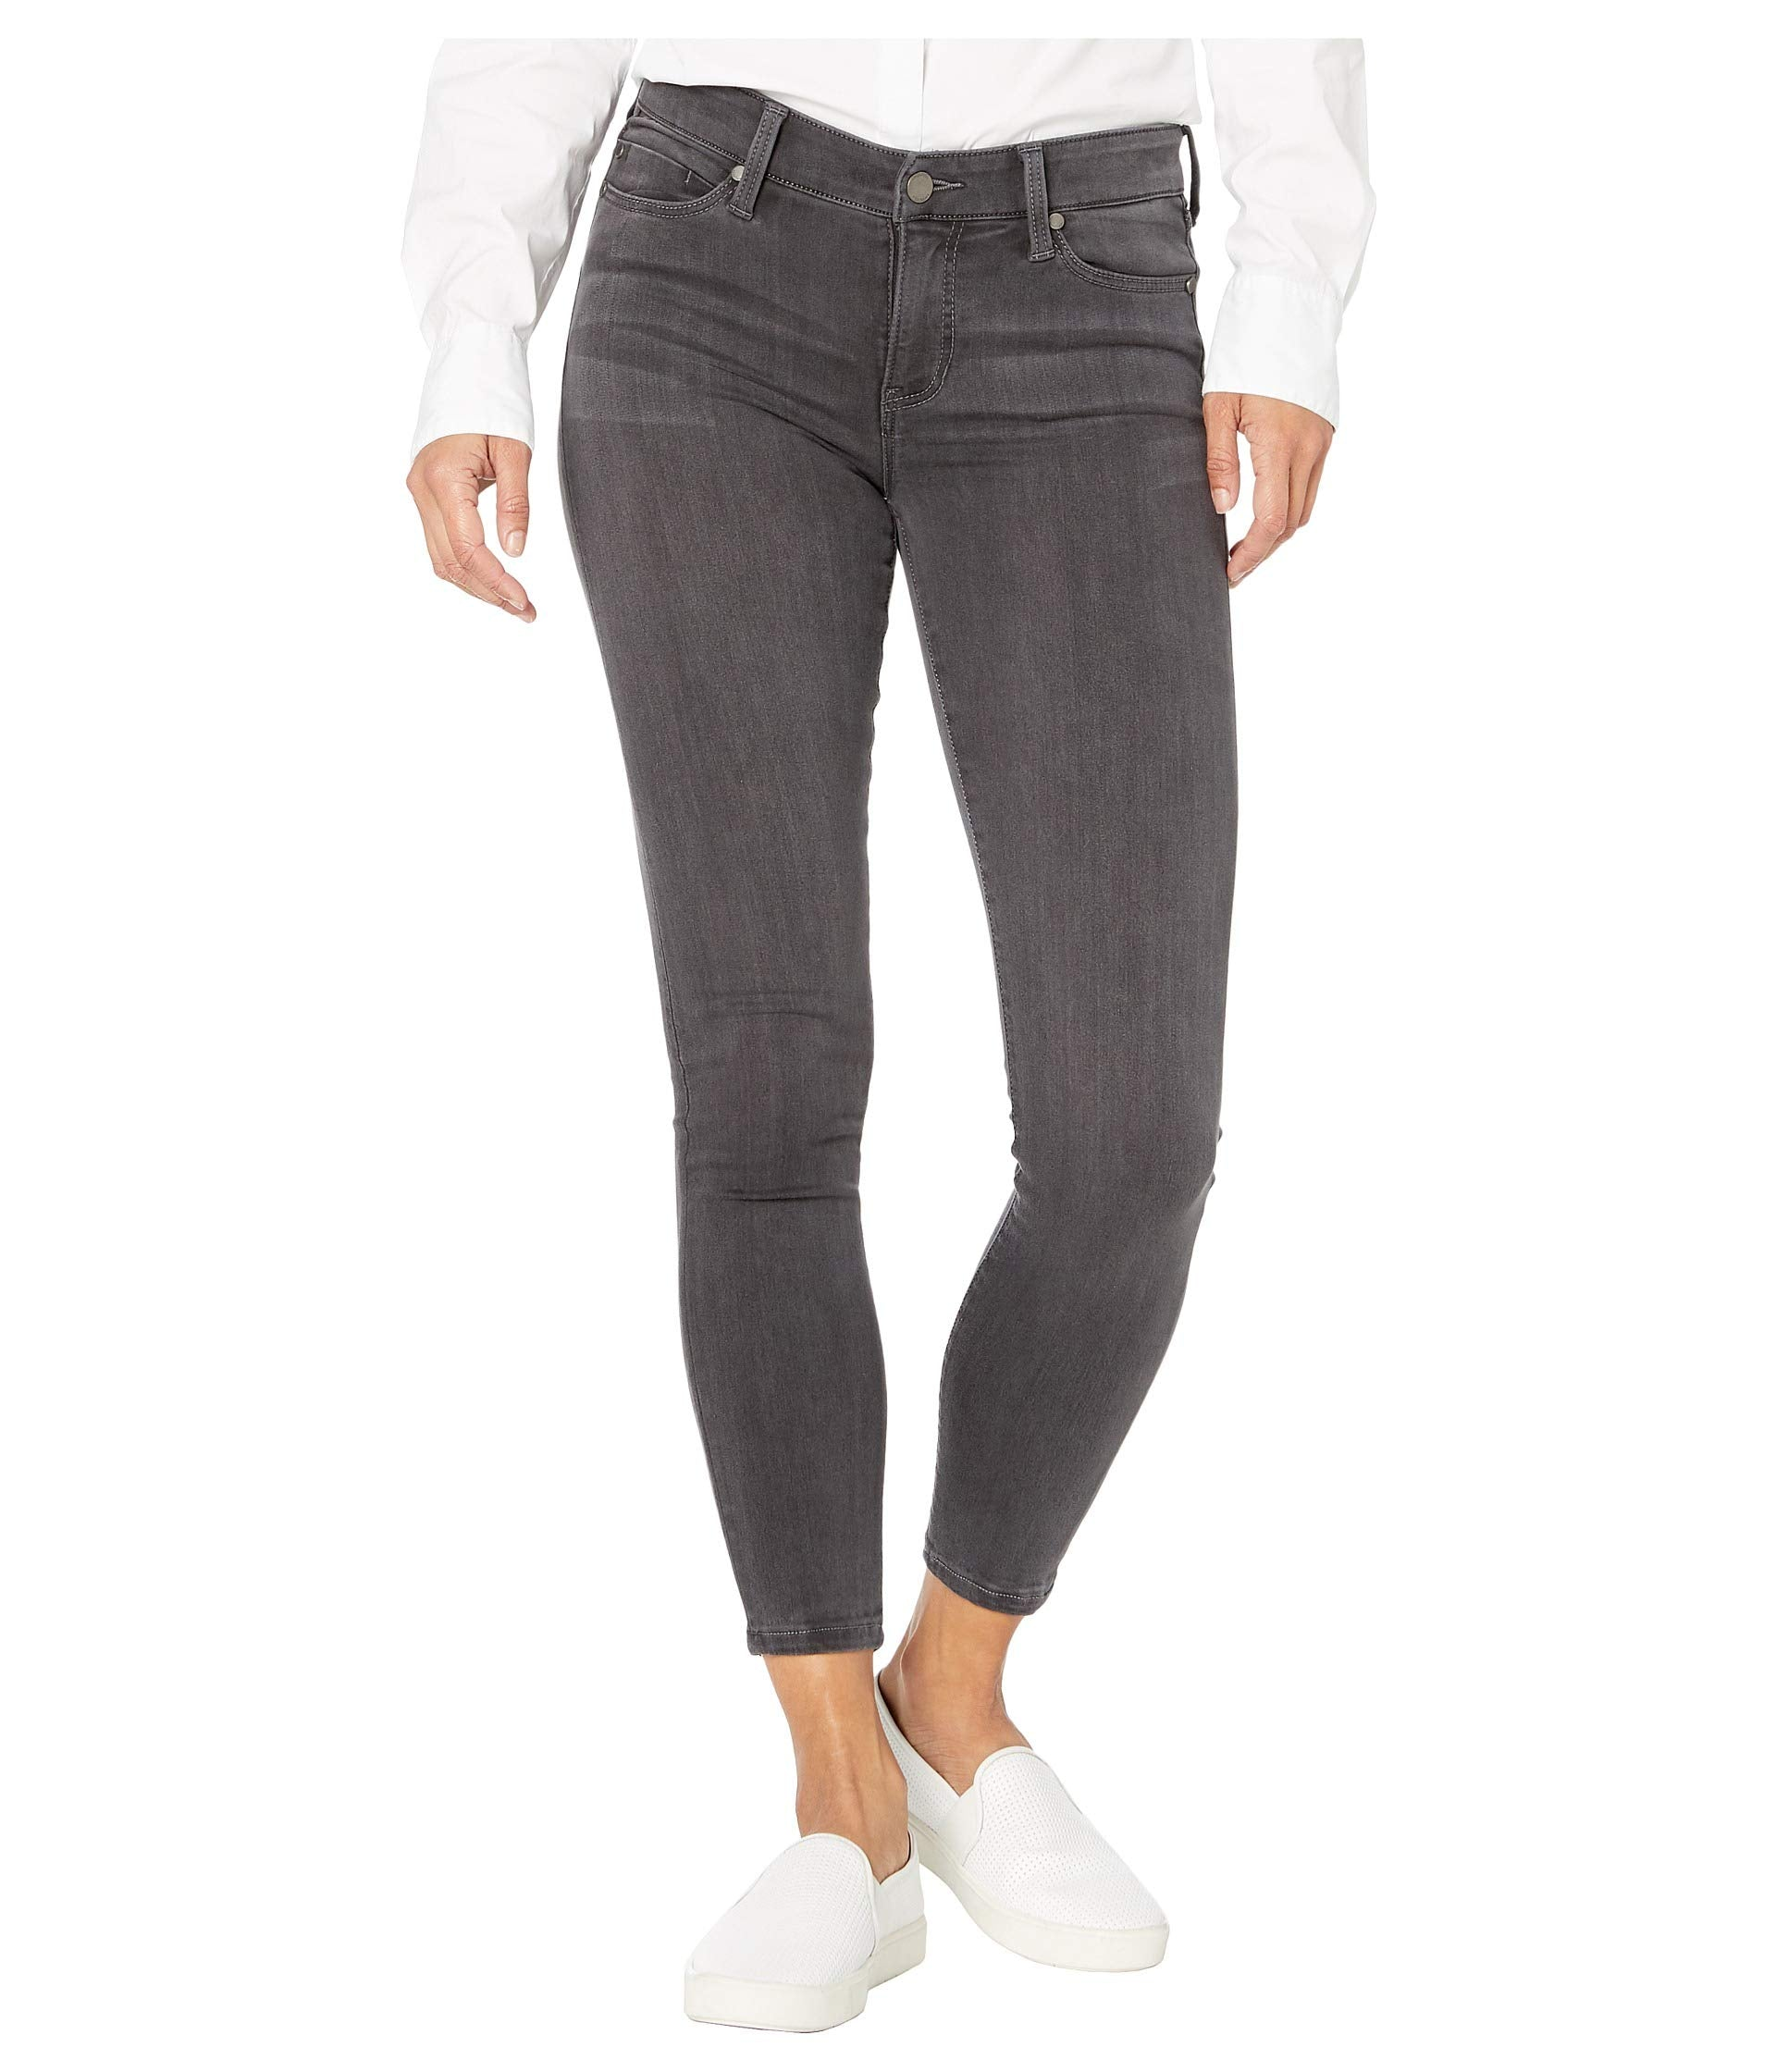 Petite Abby Skinny in Silky Soft Stretch Denim in Meteorite Wash